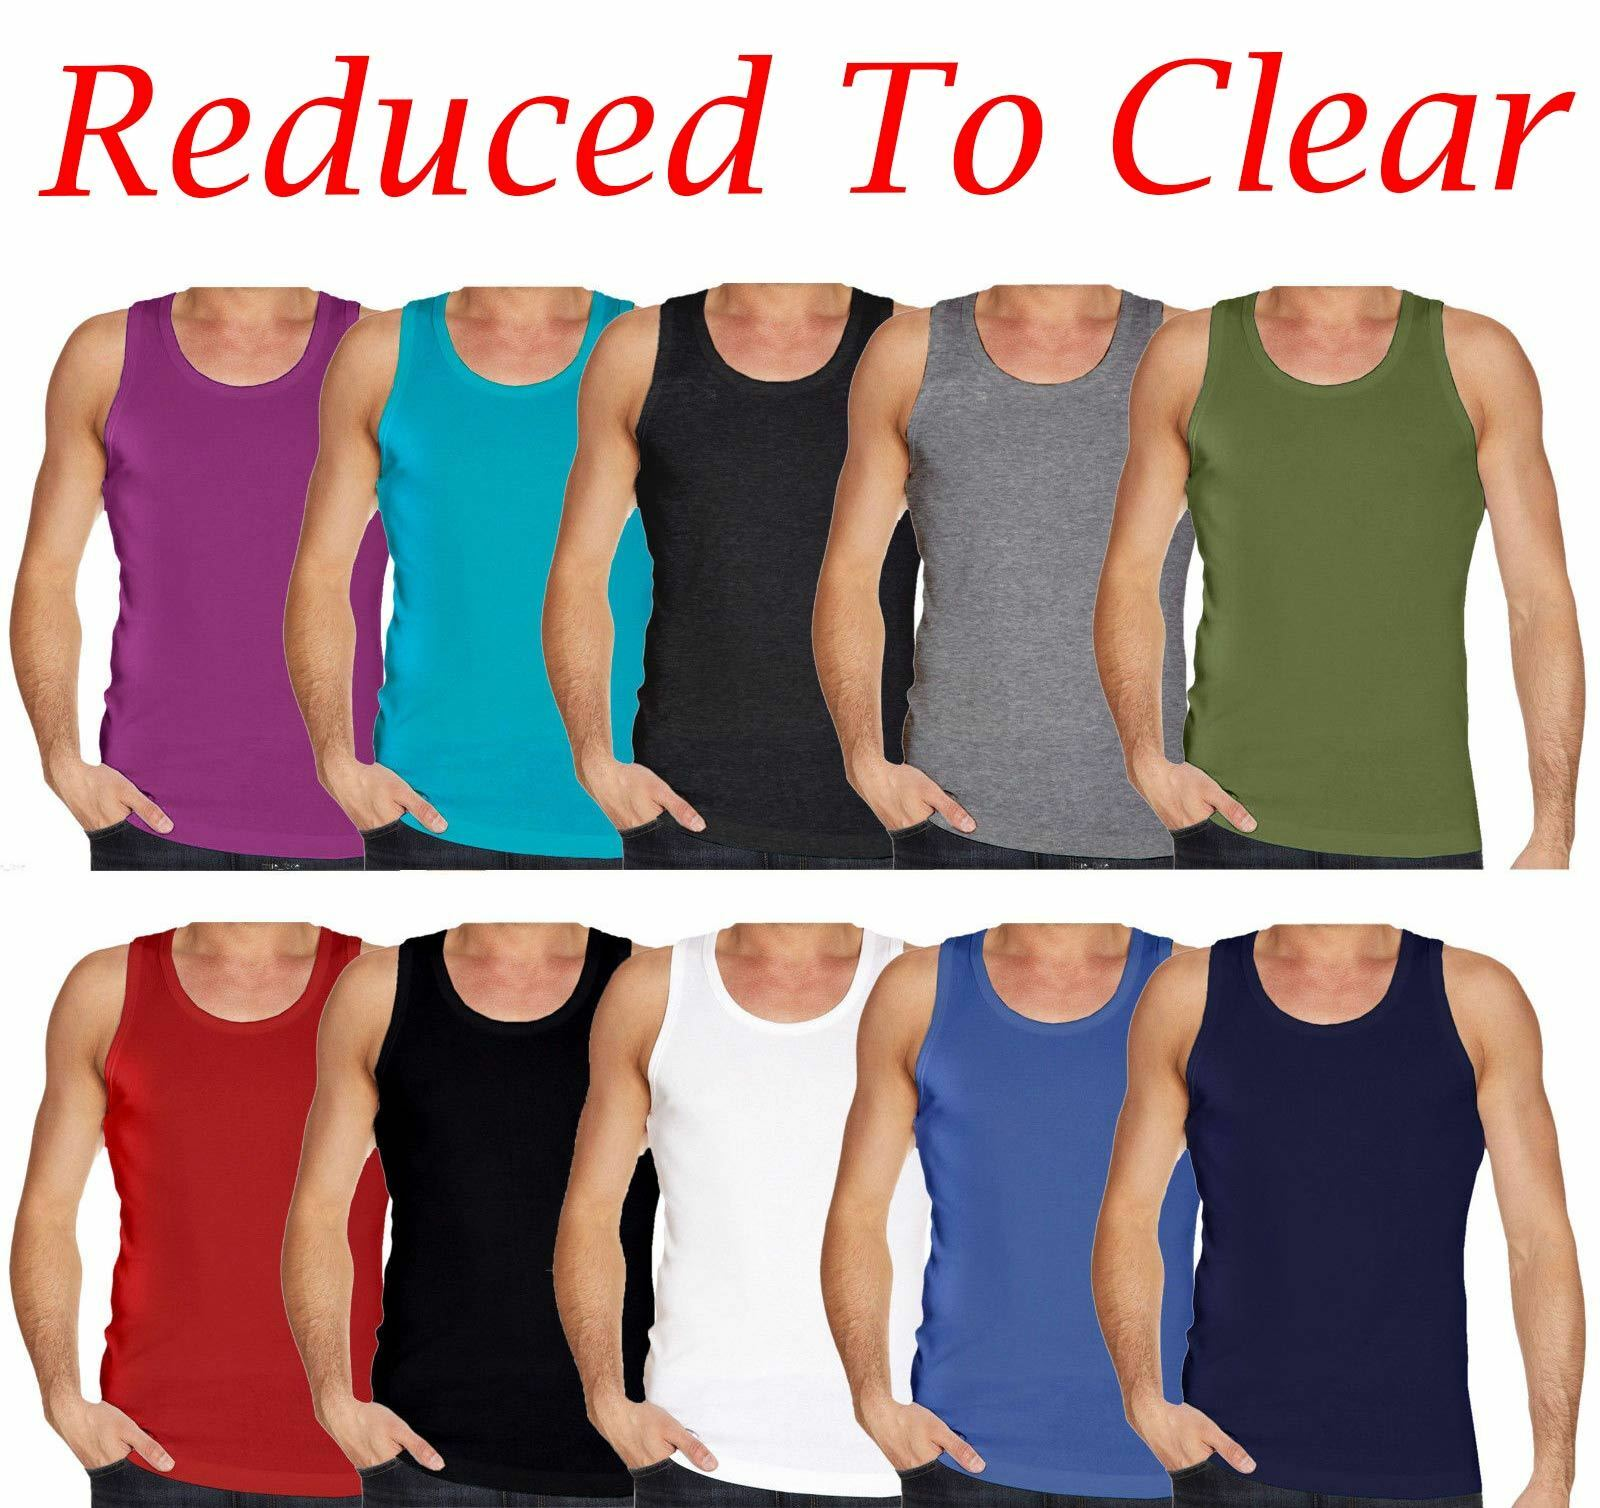 The Best Mens Vests Or 100% Cotton Tank Top Summer Training Gym Tops Pack Plain Selected Material Men's Clothing Clothing, Shoes & Accessories